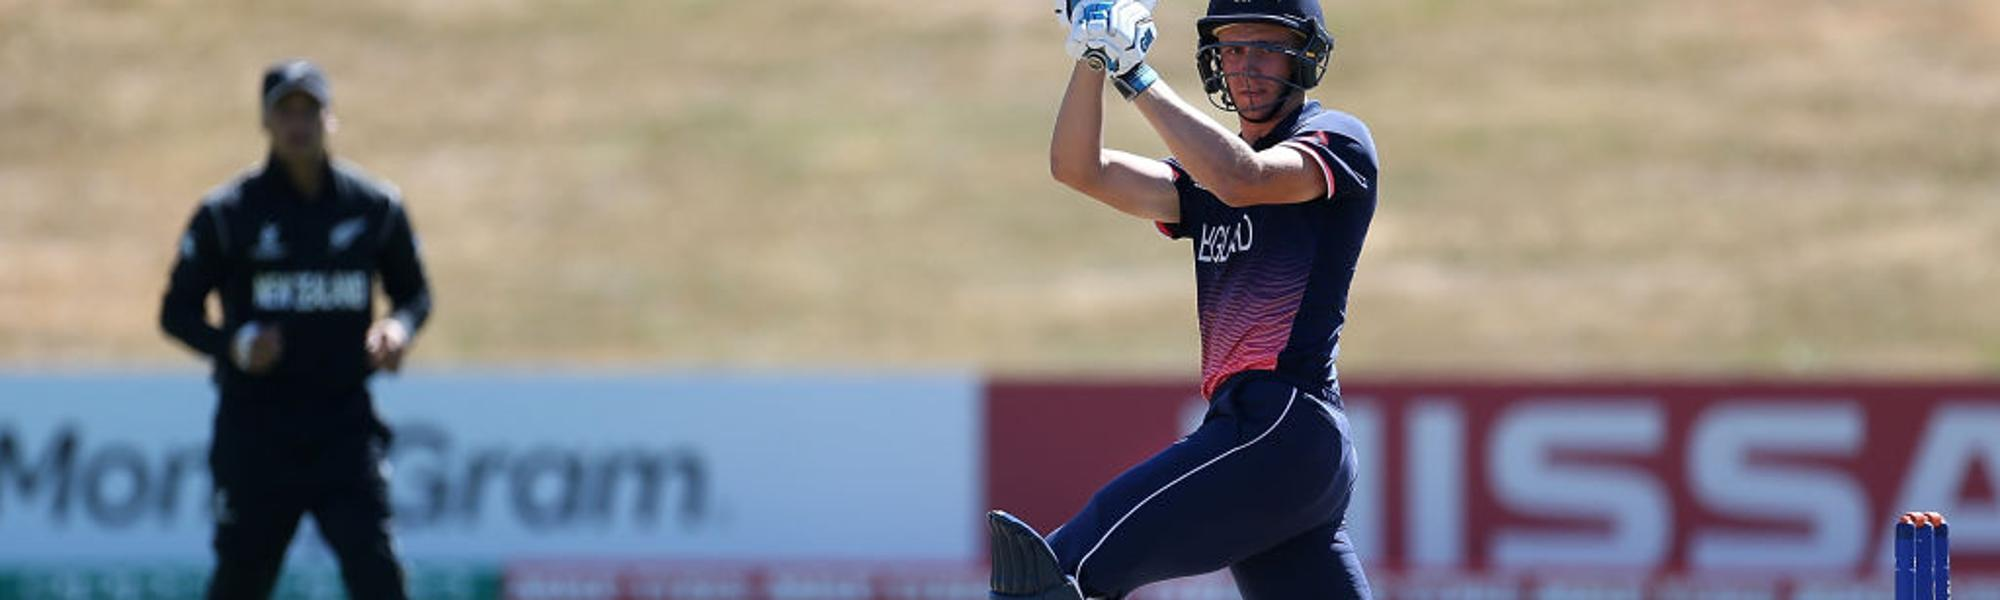 England's Will Jacks batting against New Zealand in the 2018 ICC U19 CWC